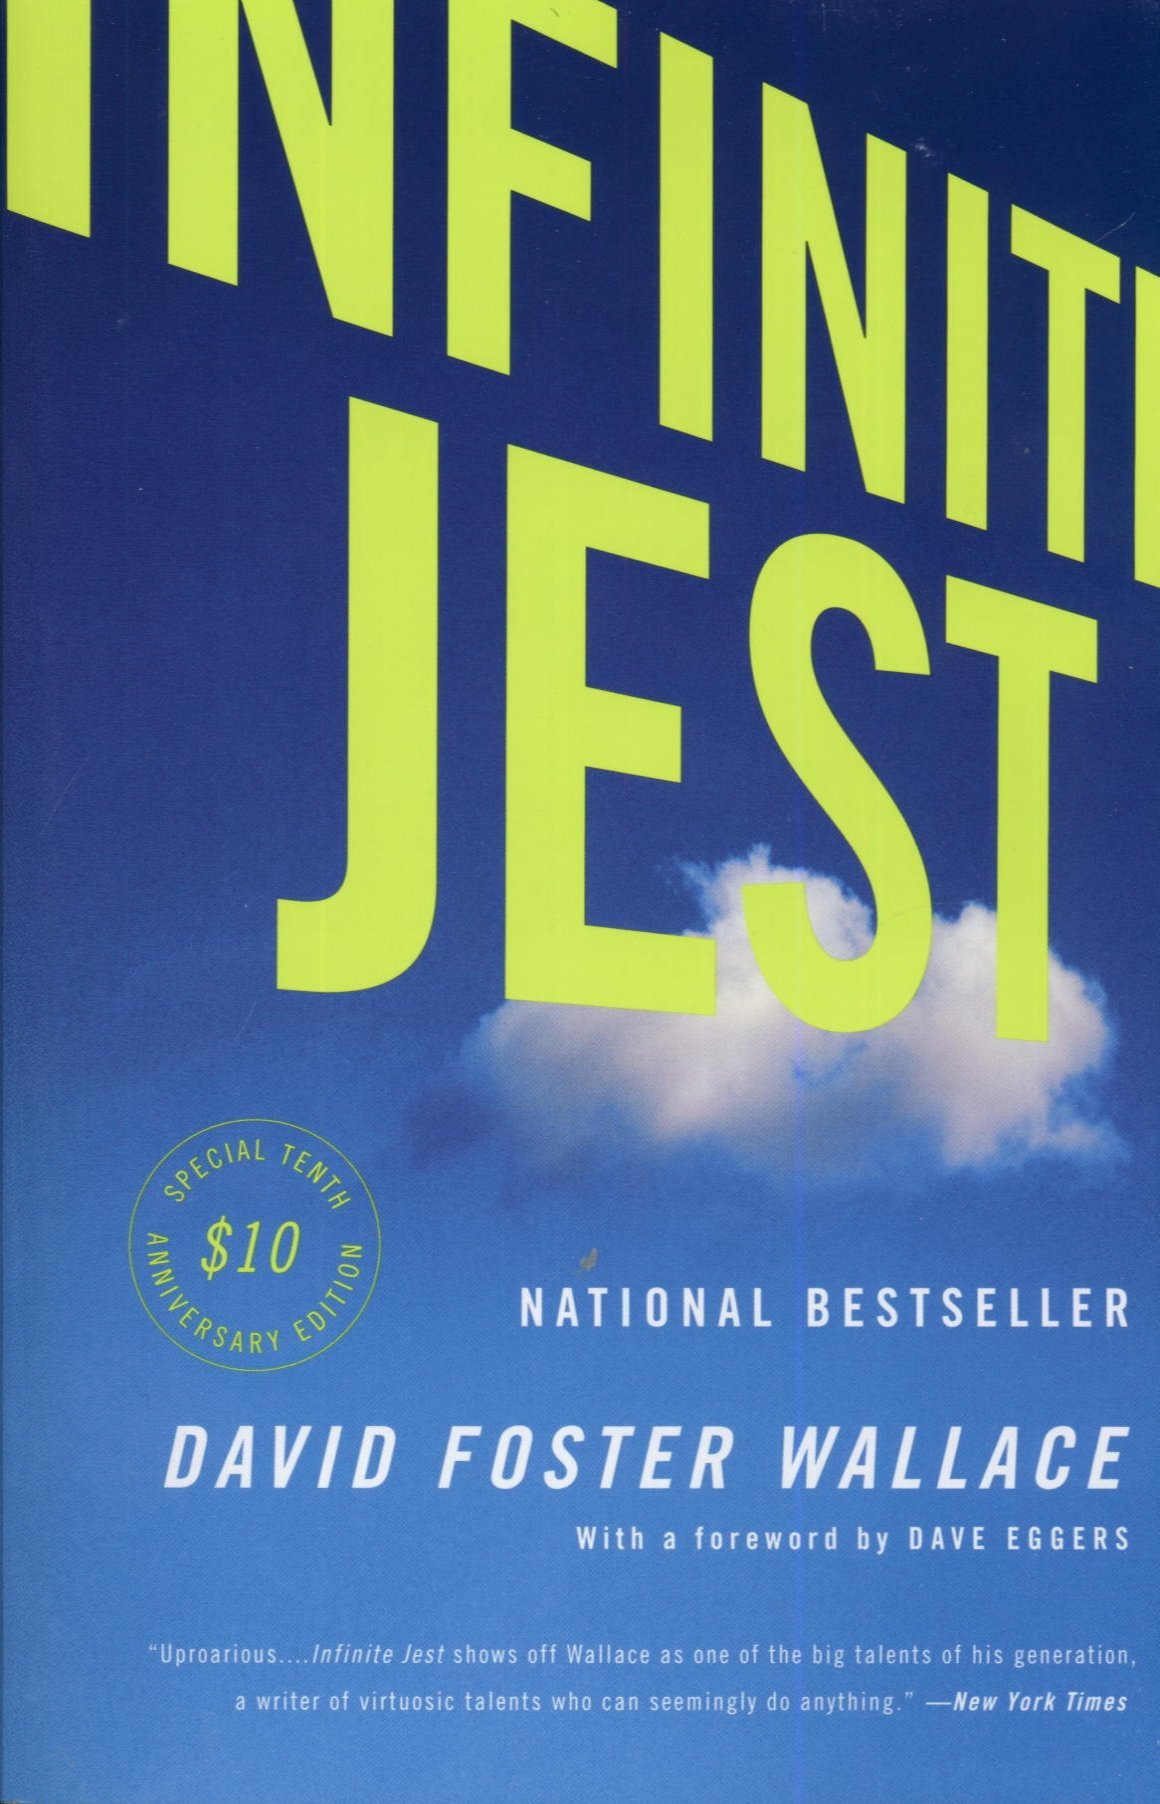 By David Foster Wallace